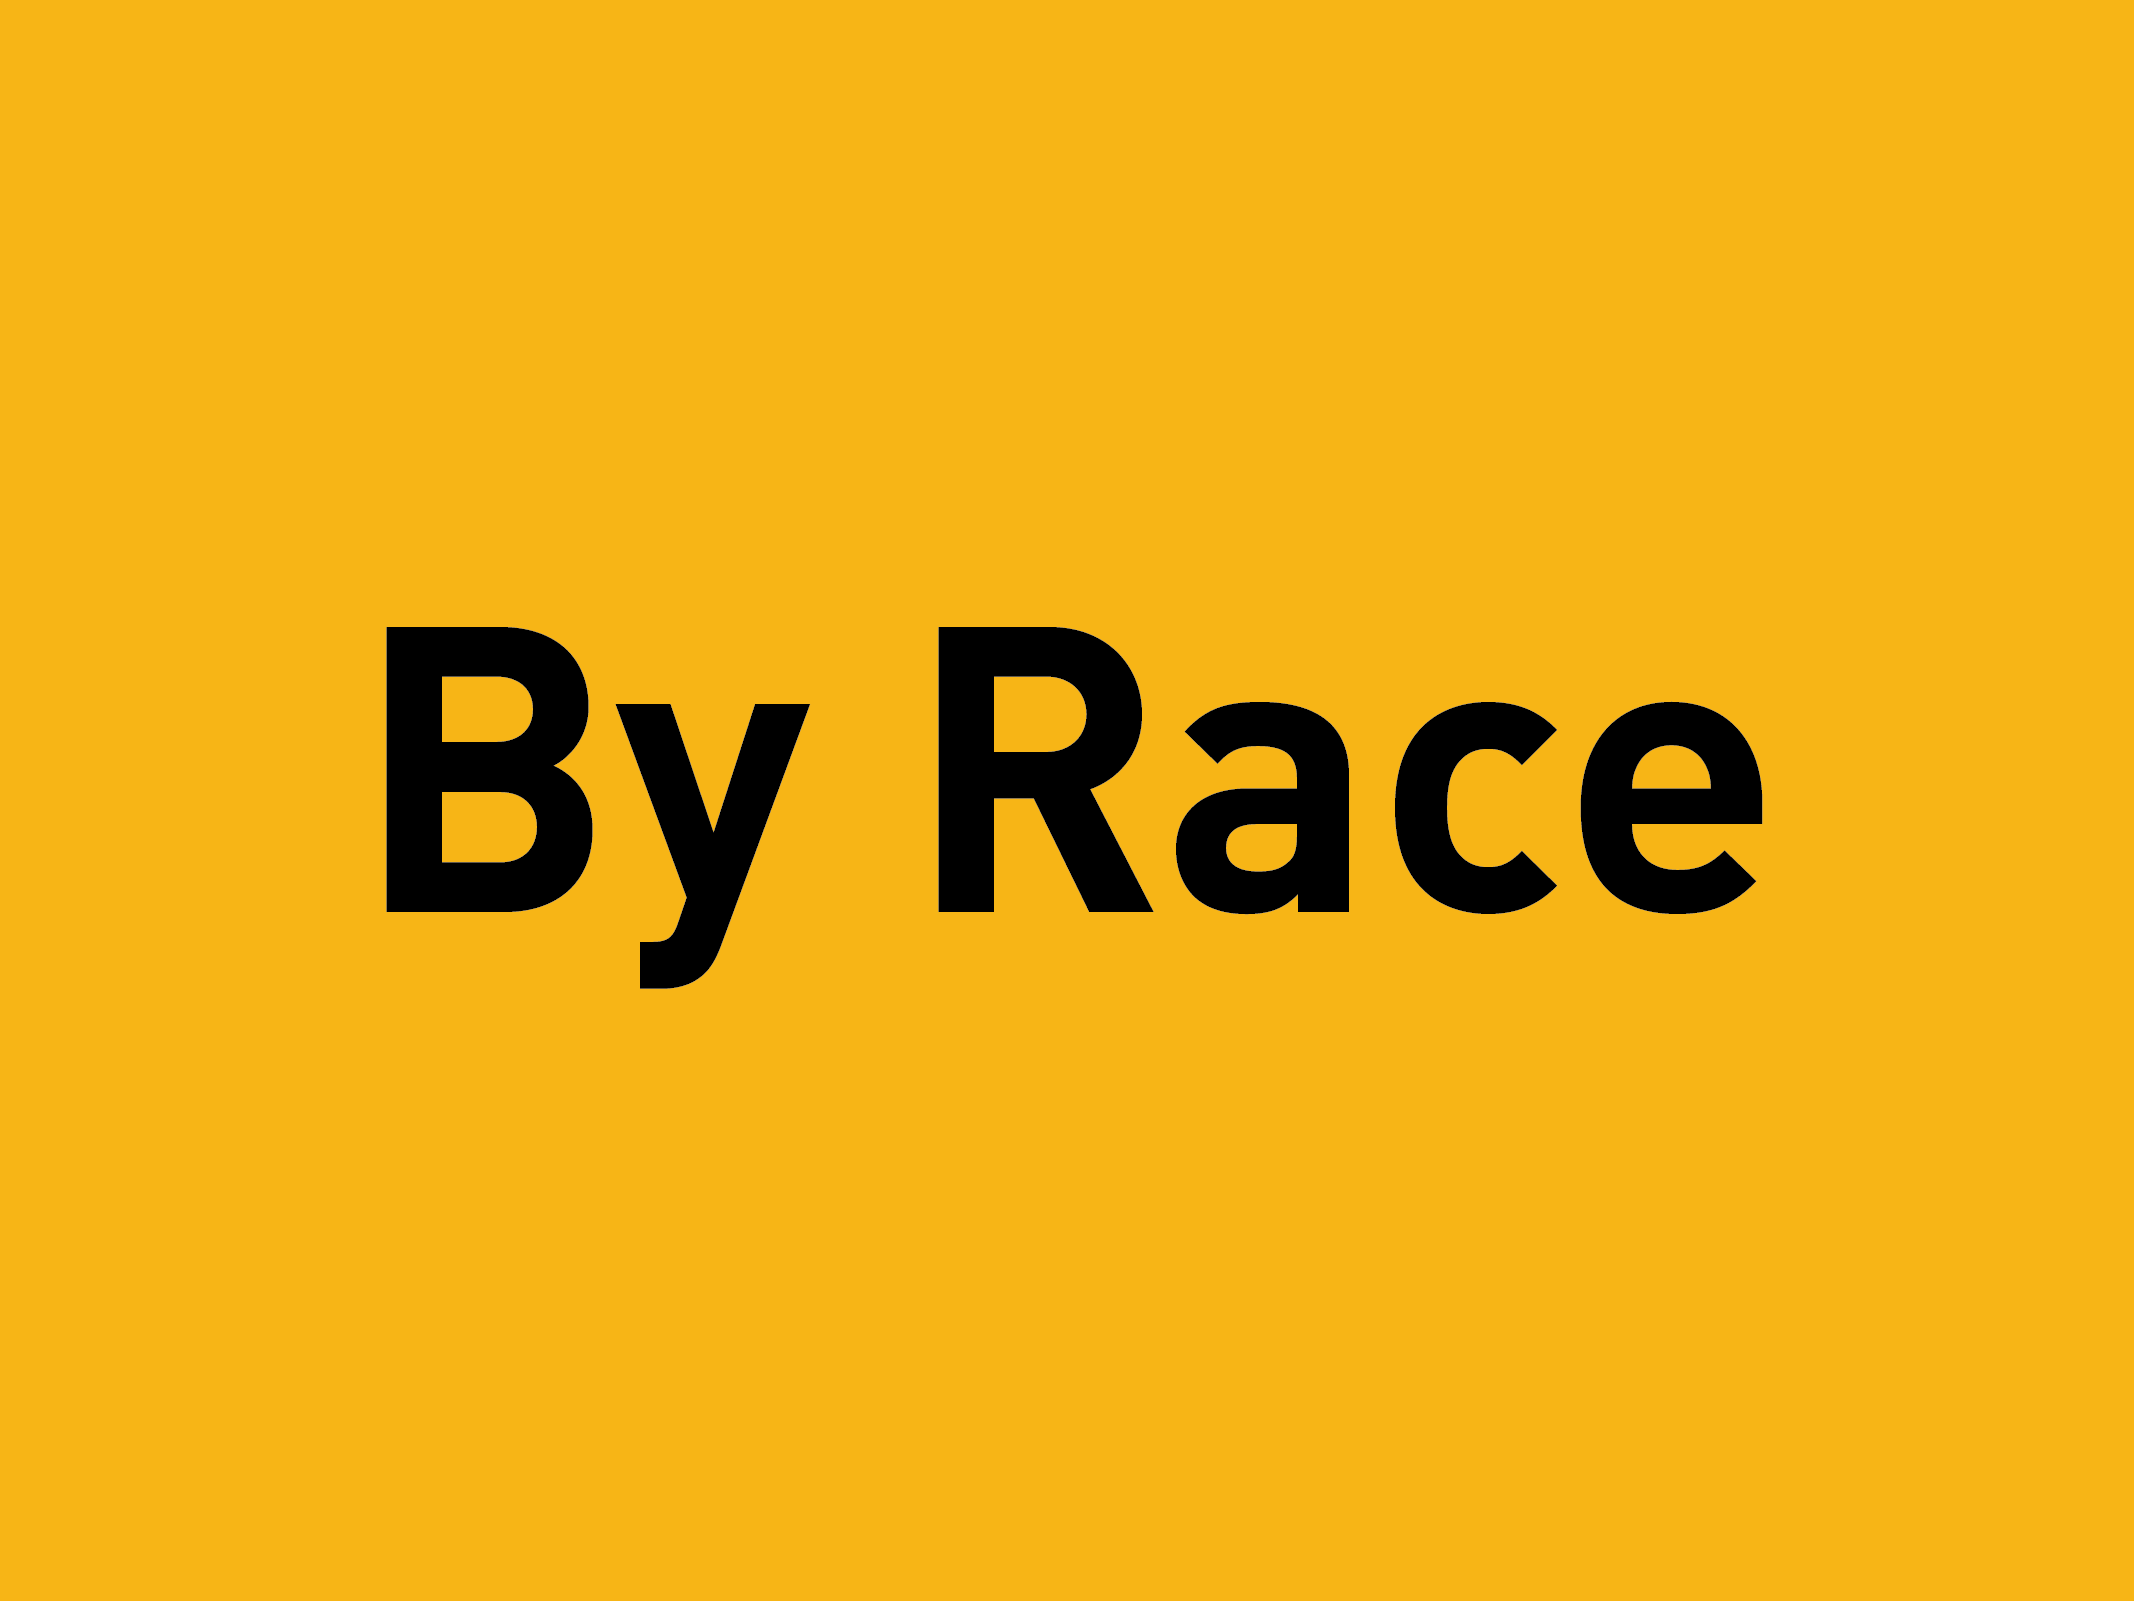 Filter by Race